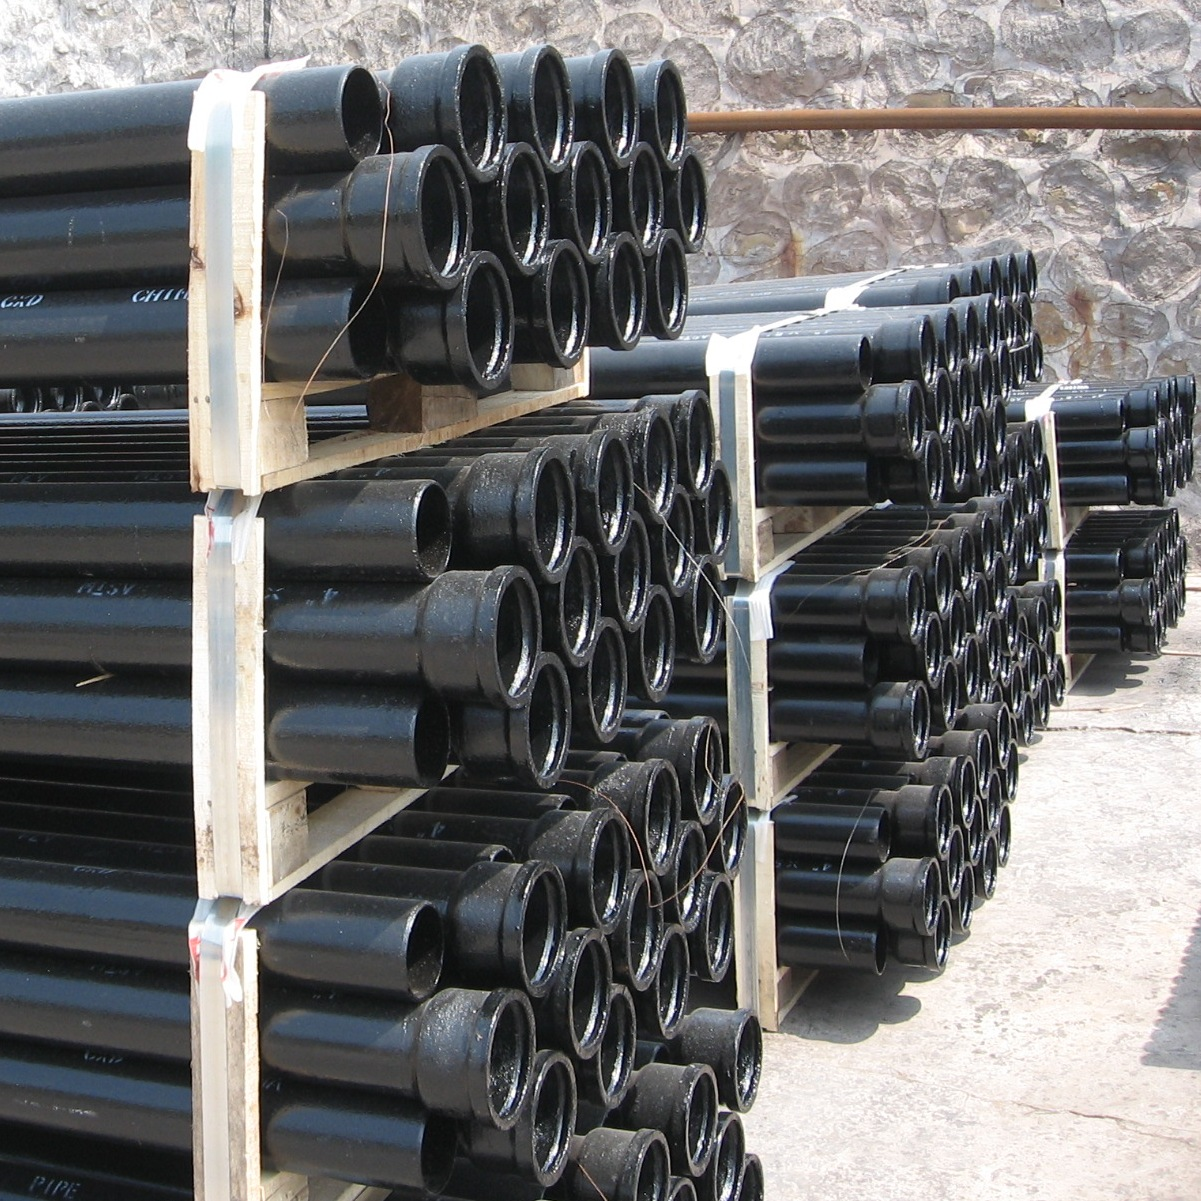 Image of 10' EXTRA HEAVY SH PIPES